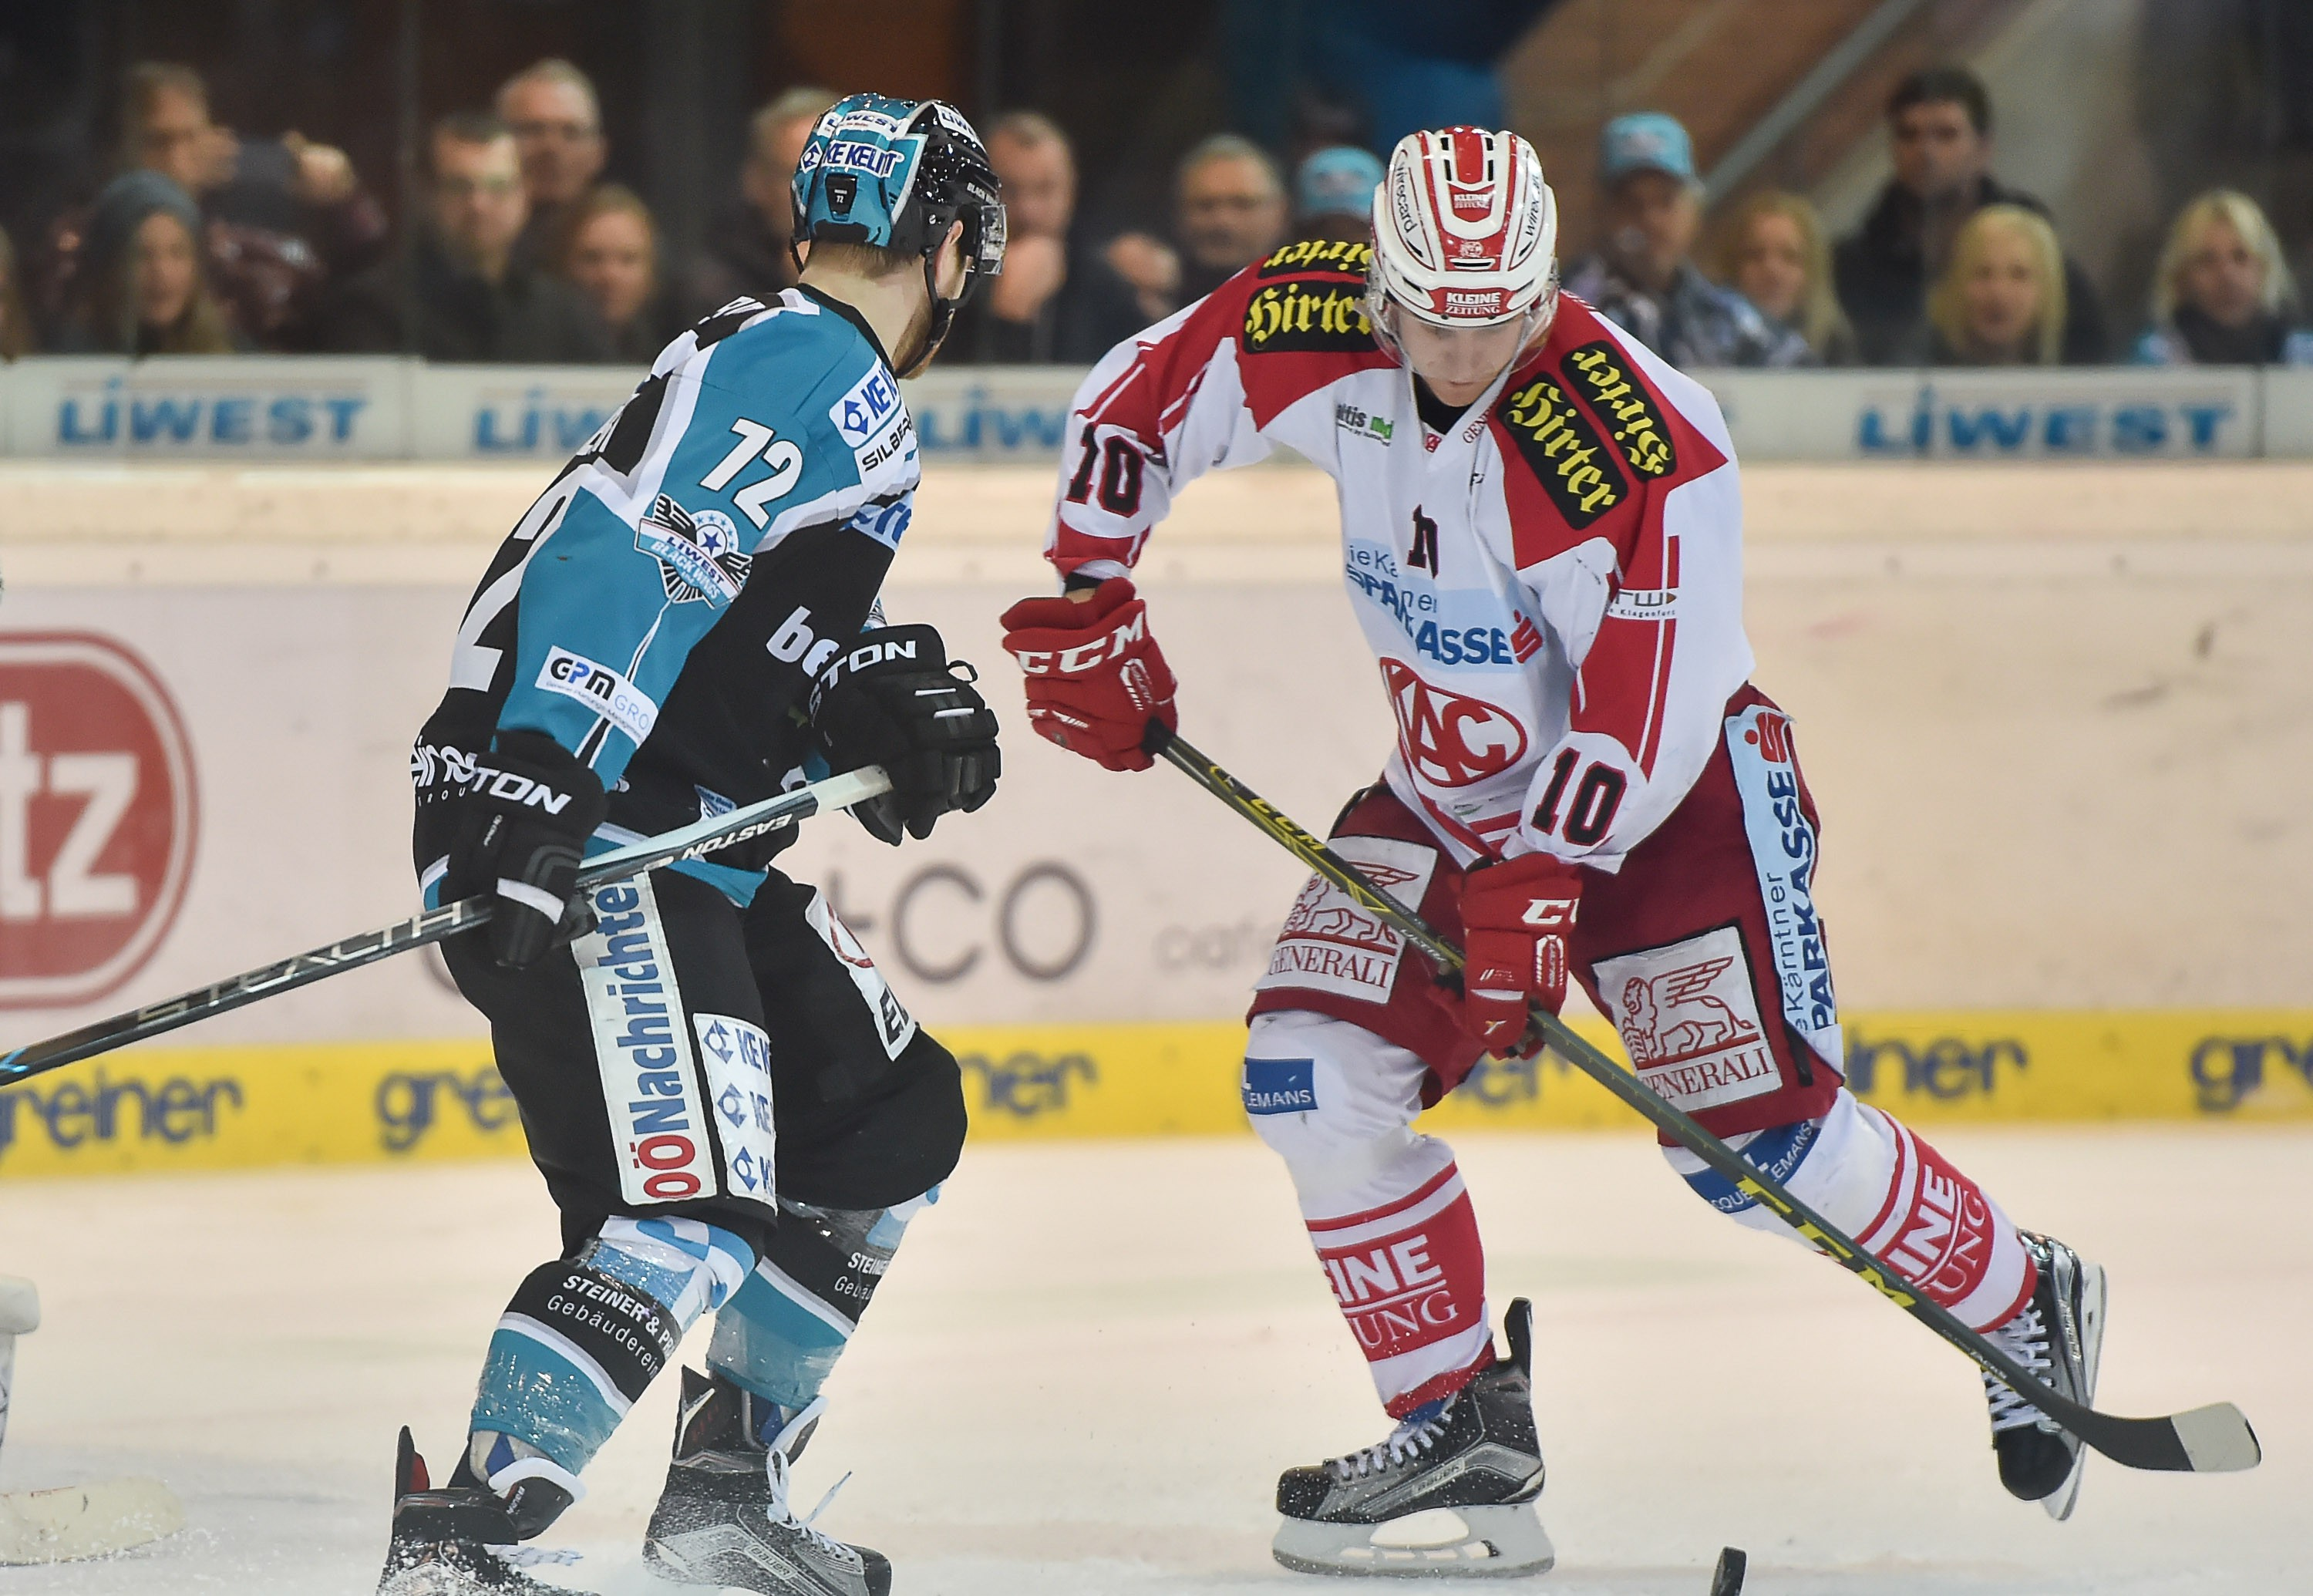 Eishockey-Liwest-Black-Wings-Linz-vs-KAC-11.12.2015-3-16-e1452449803792